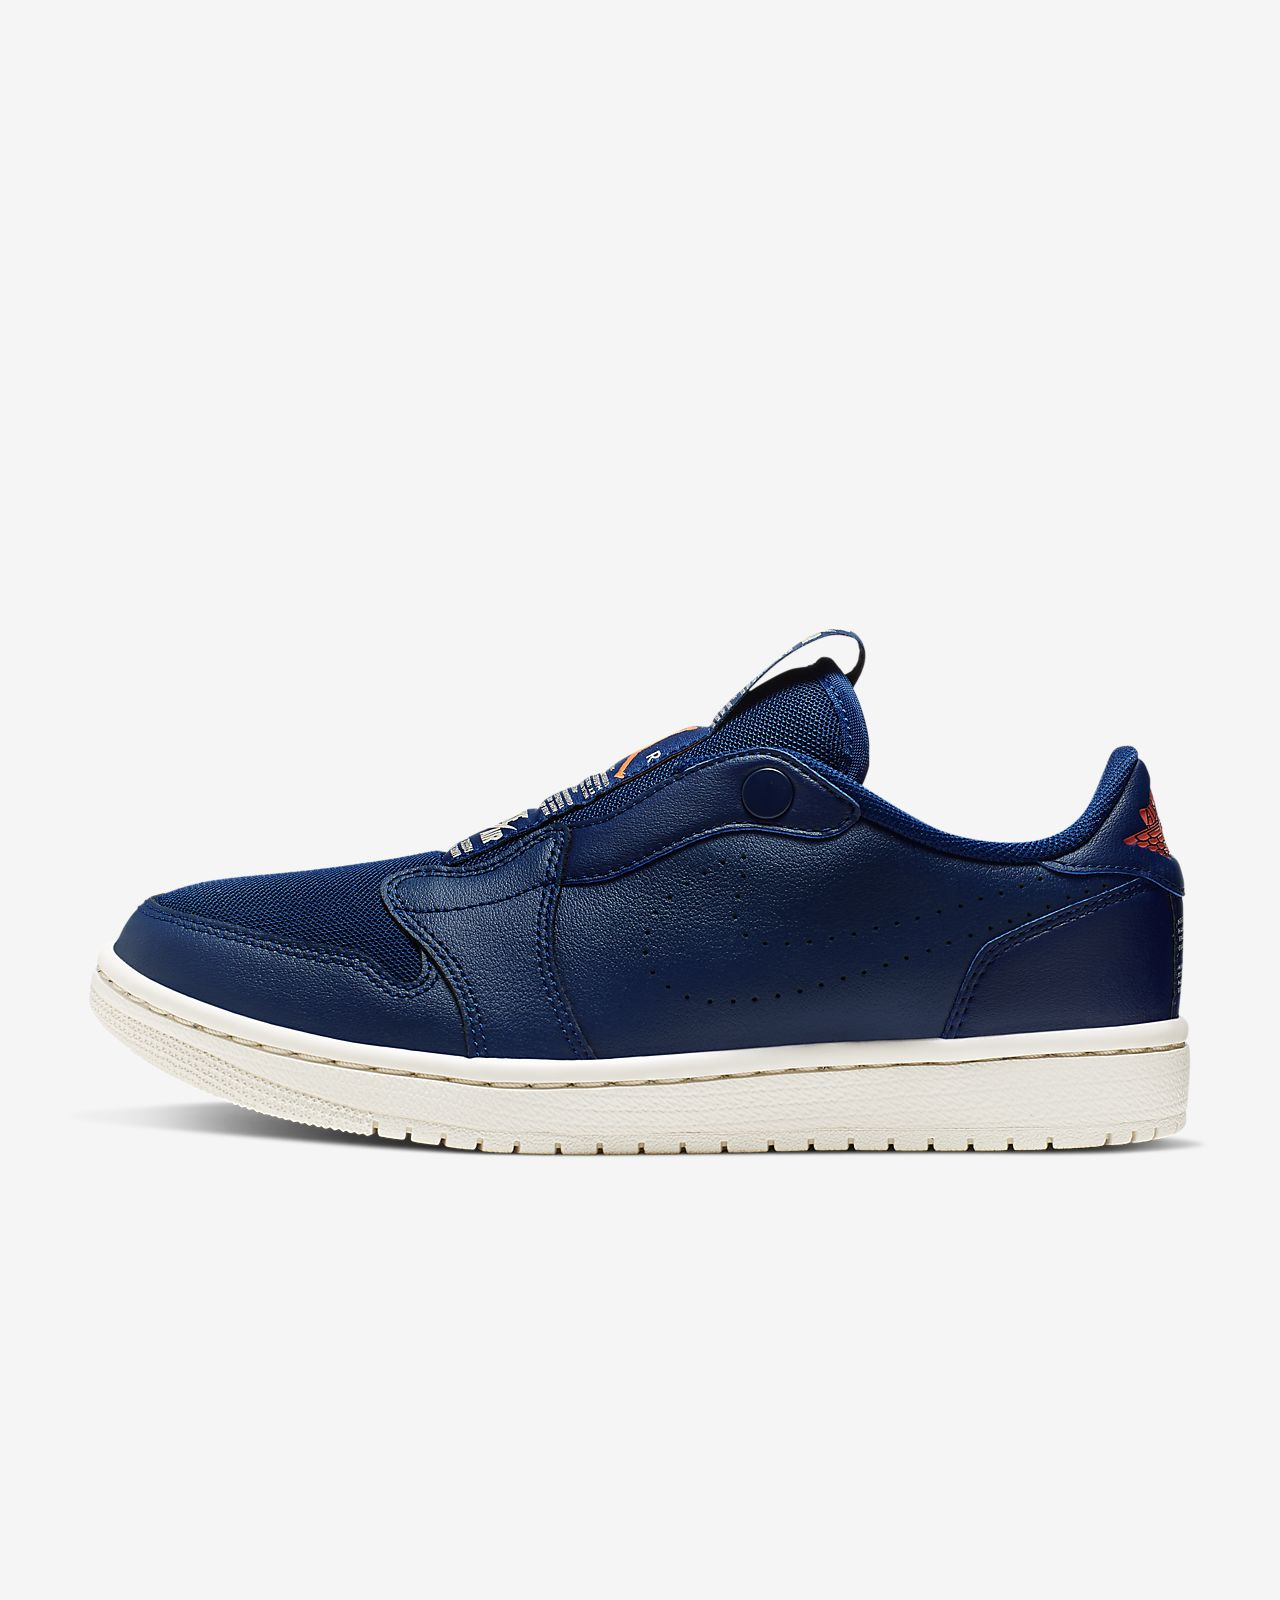 960ac72c1fb5c9 Air Jordan 1 Retro Low Slip Women s Shoe. Nike.com NO